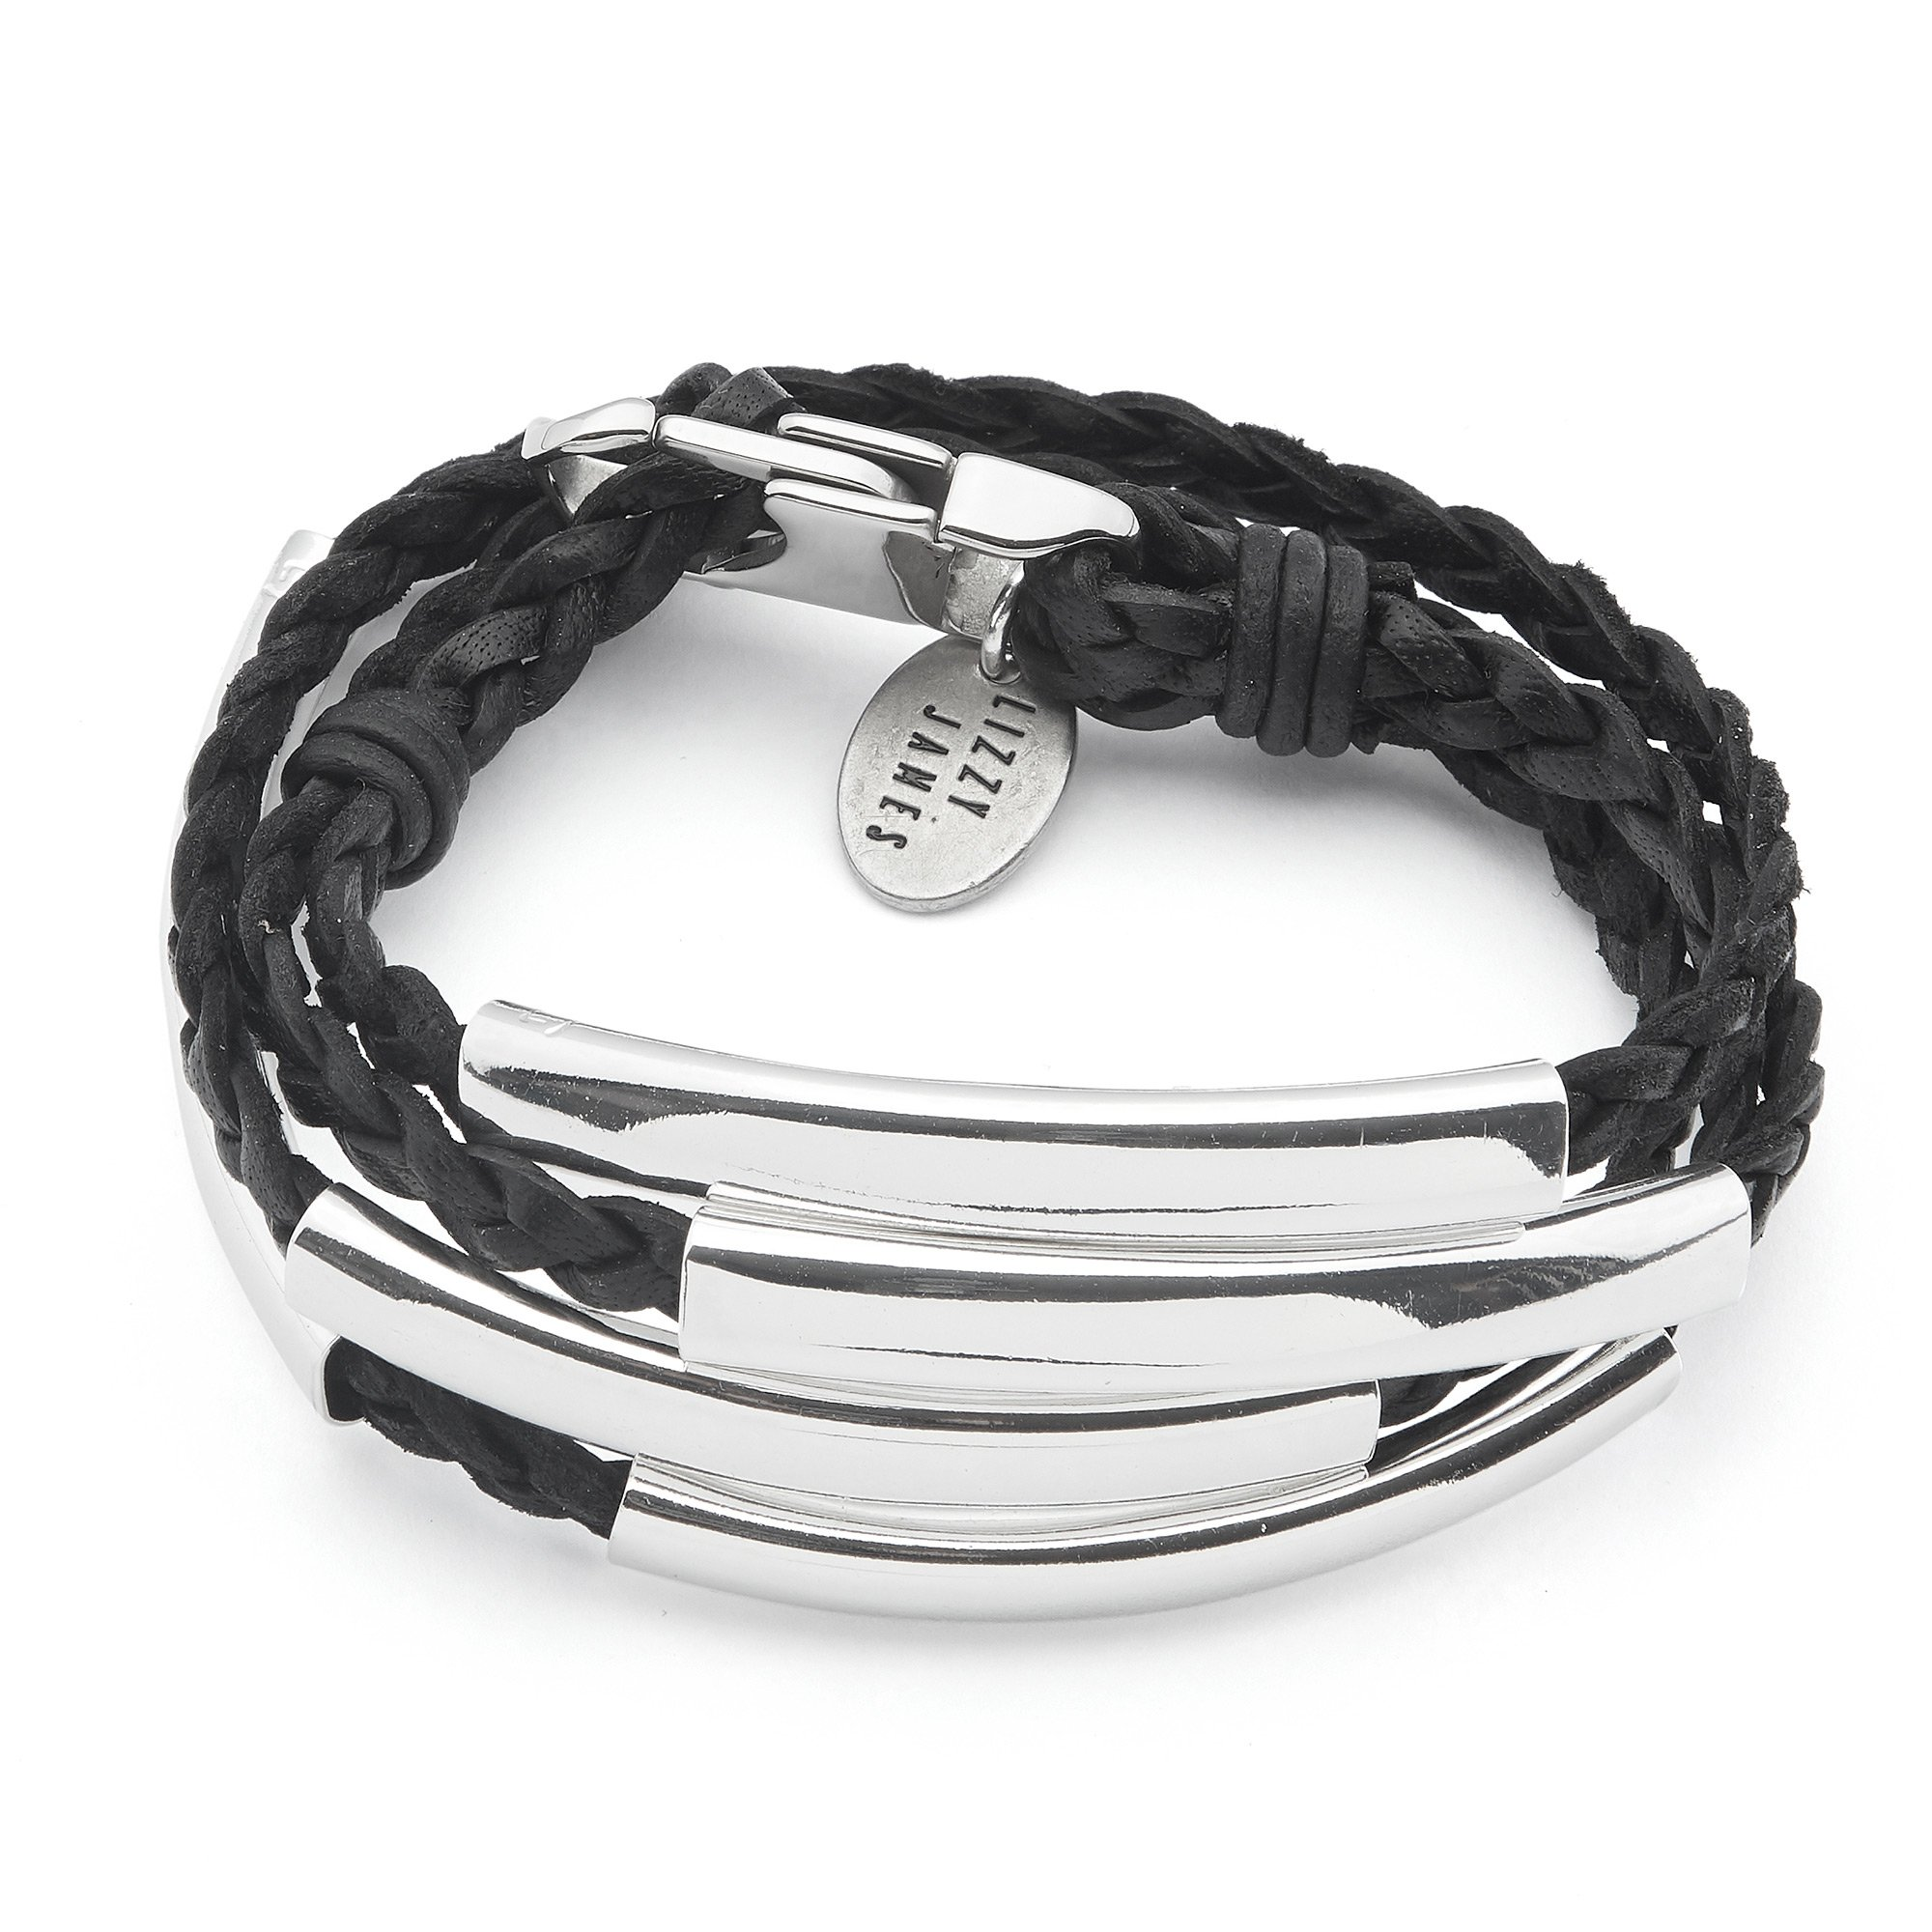 Mini Addison Wrap Bracelet Silverplate in Natural Black Braided Leather Size Small by Lizzy James